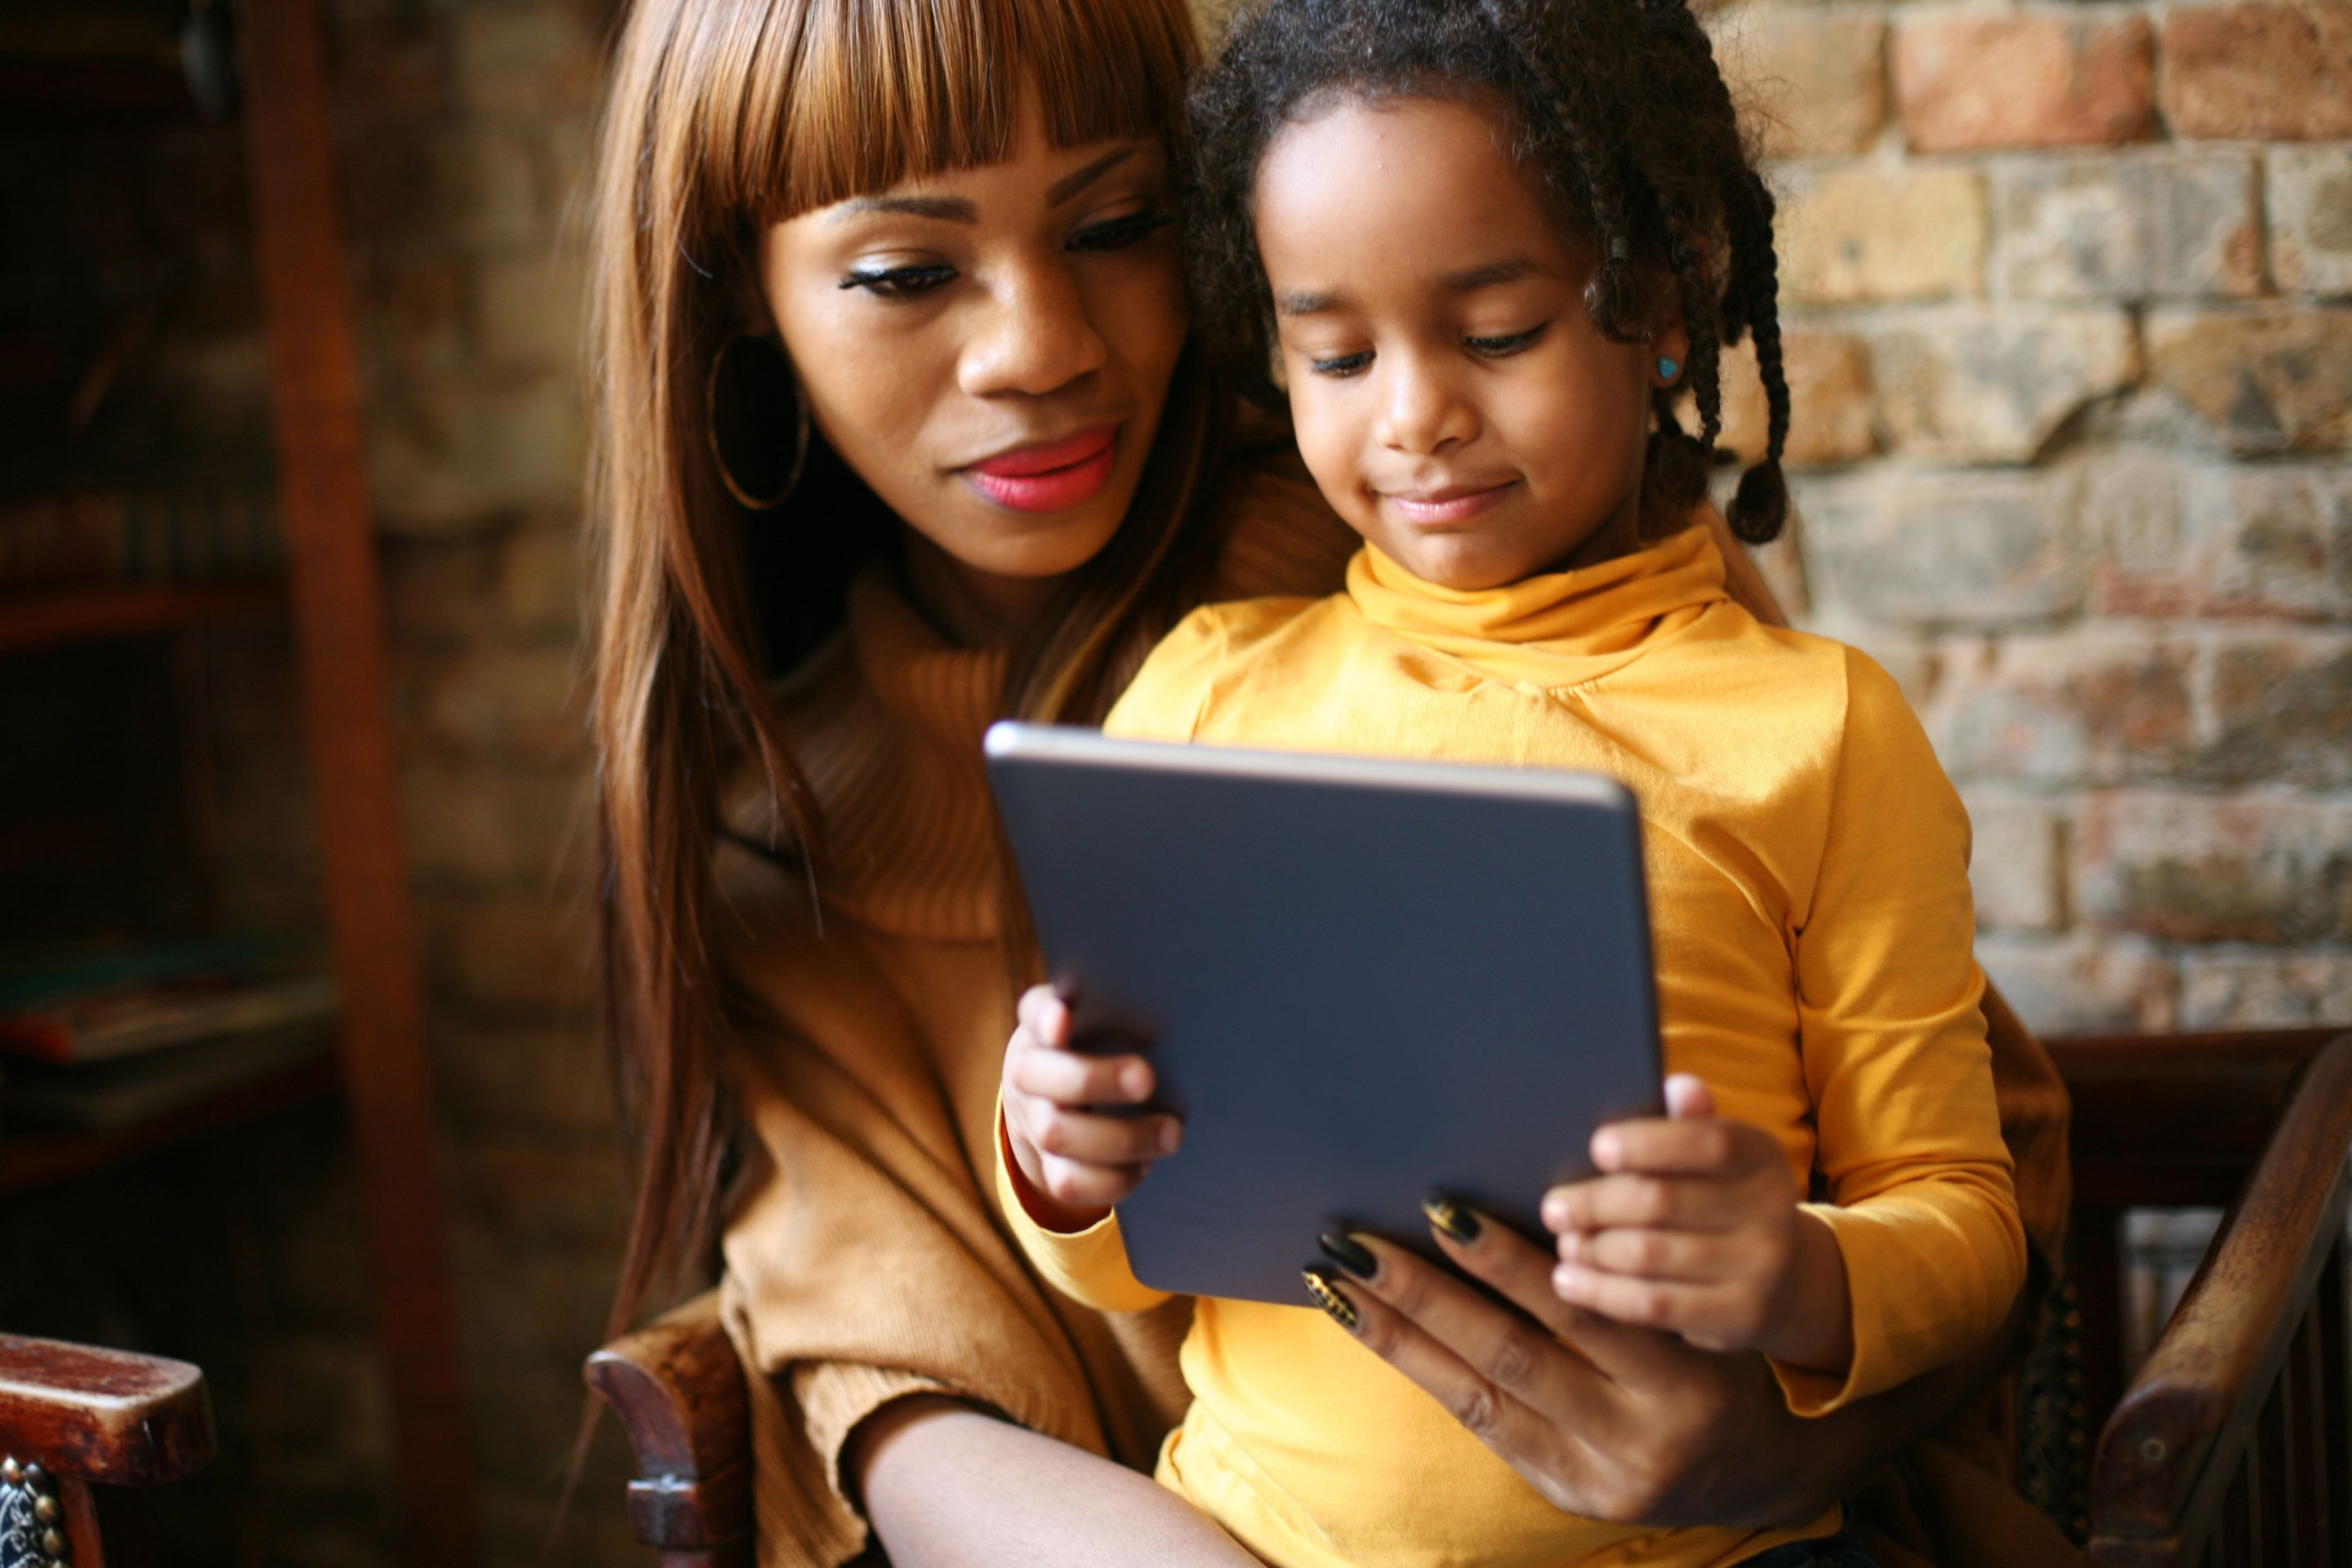 A daughter sitting on her mother's lap, both looking at a tablet that the daughter is holding